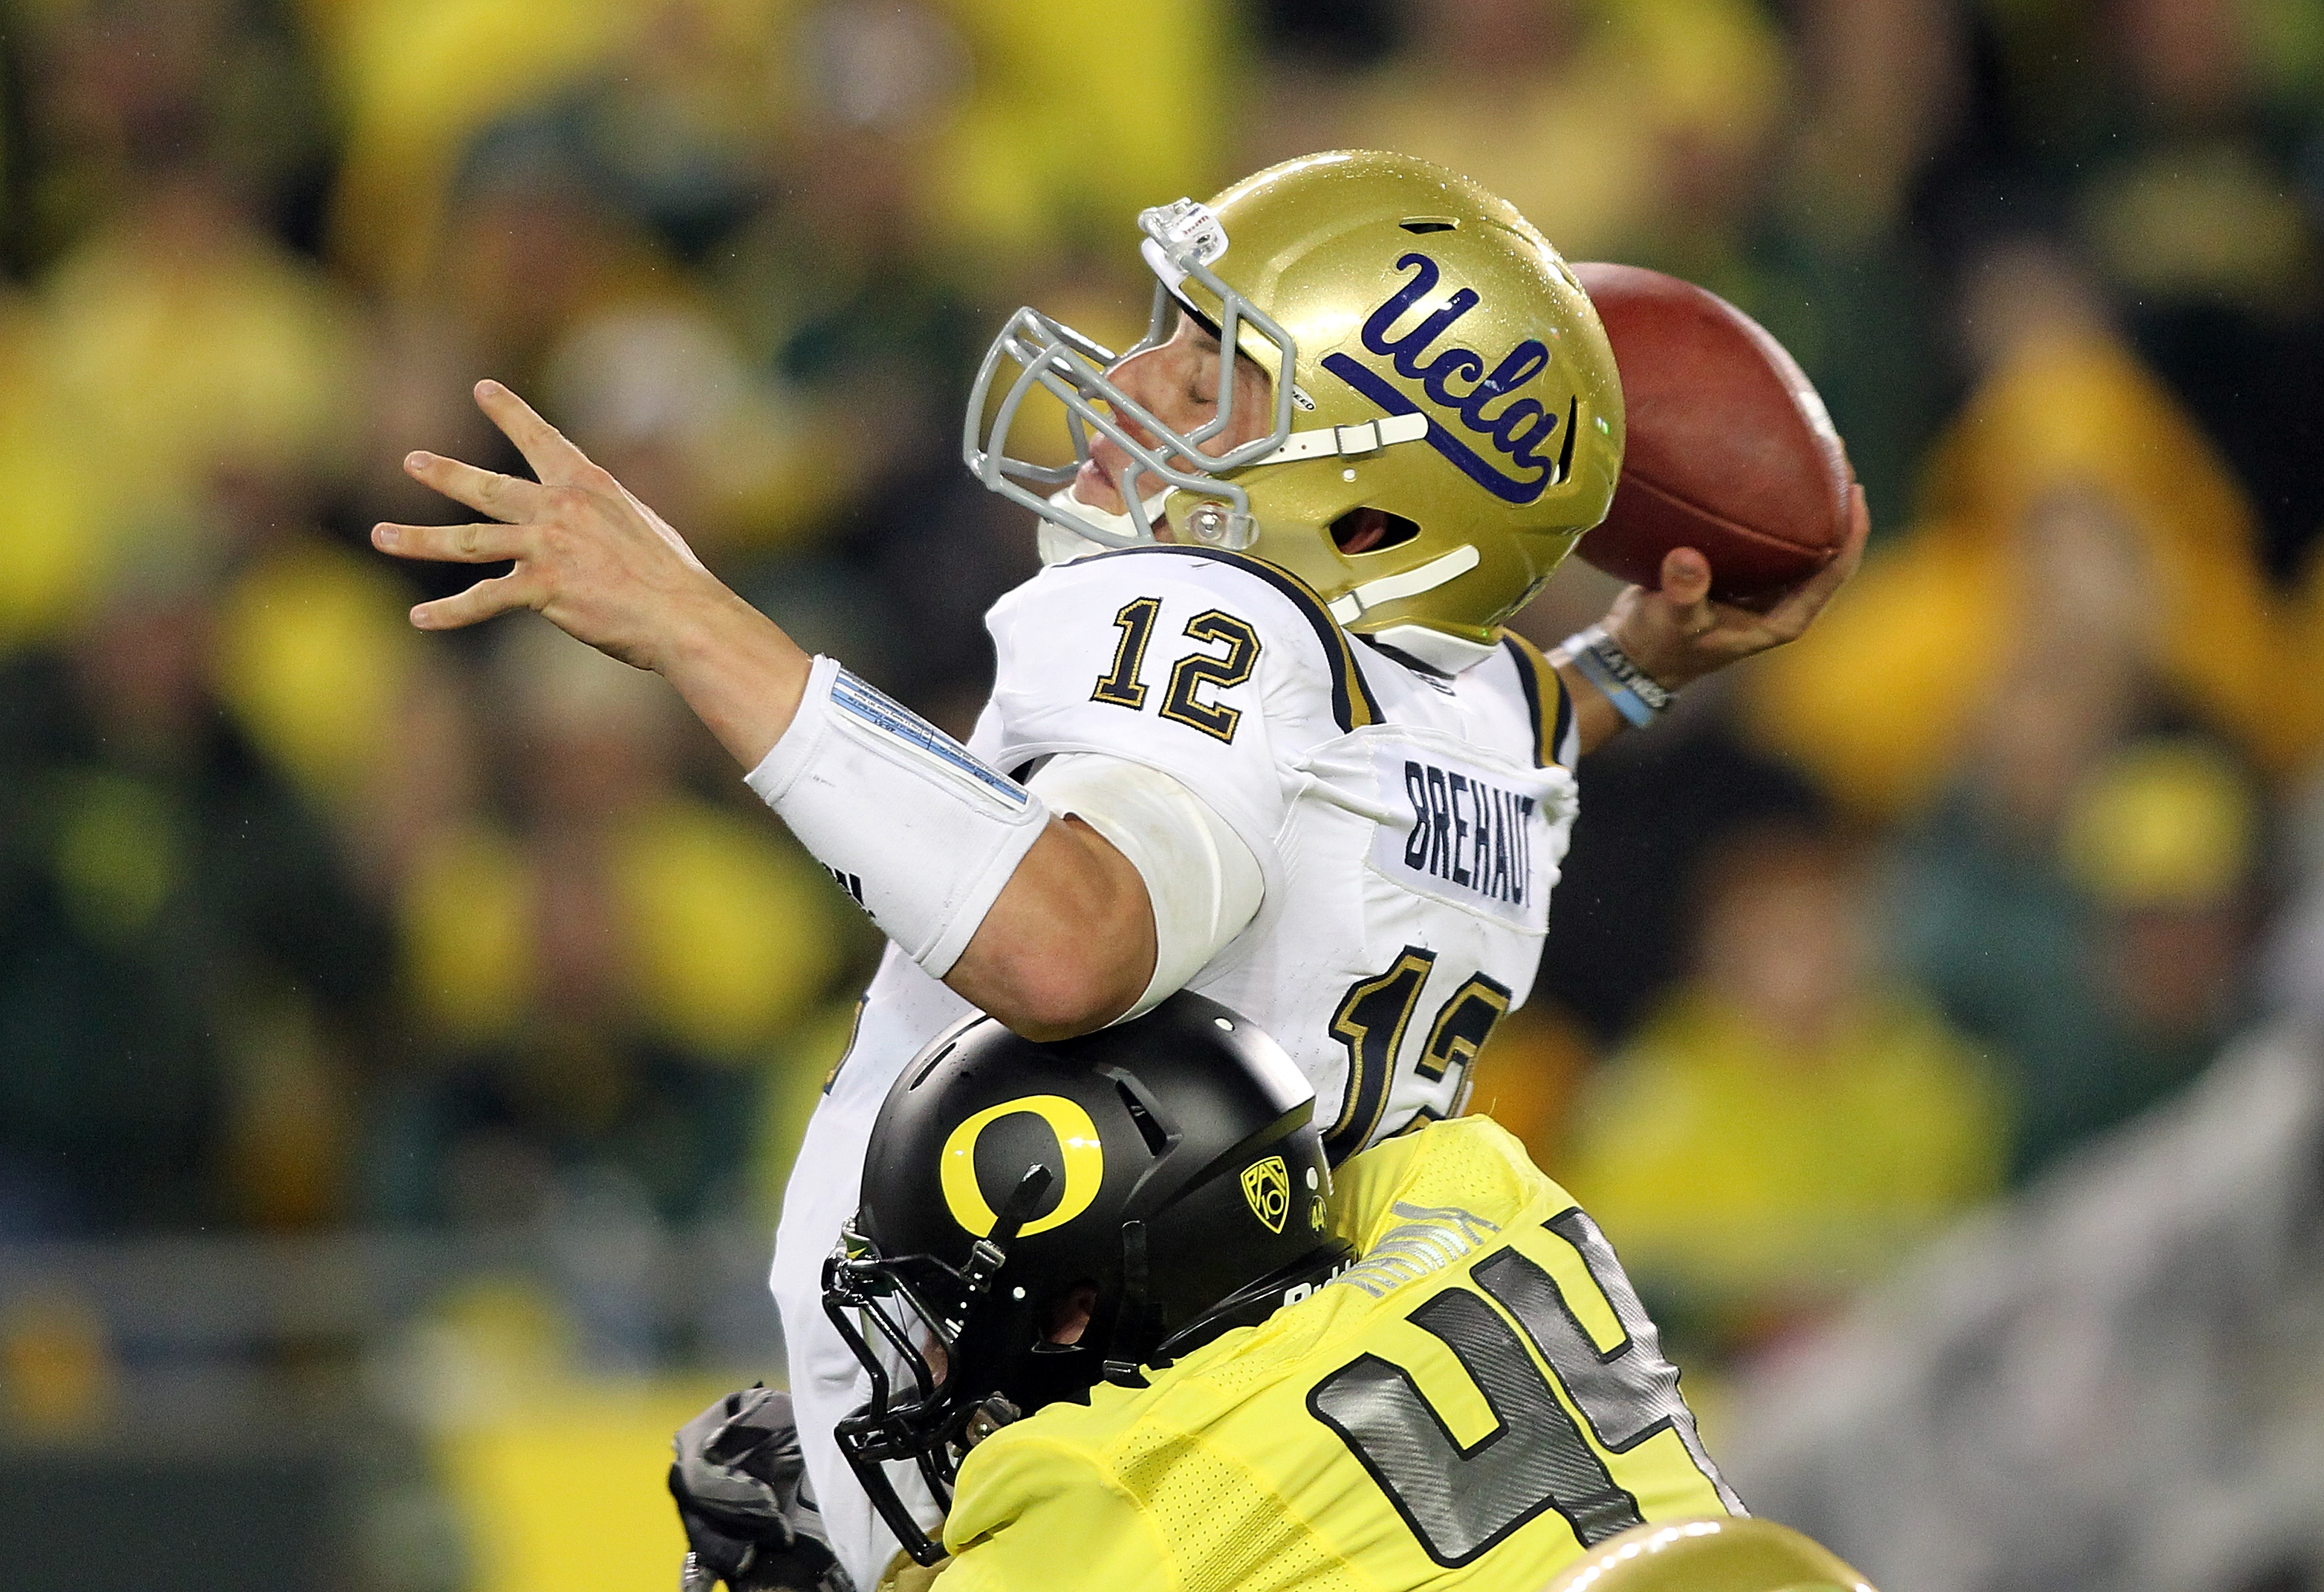 EUGENE, OR - OCTOBER 21:  Richard Brehaut #12 of the UCLA Bruins  is sacked by Brandon Hanna #44 of the Oregon Ducks on October 21, 2010 at the Autzen Stadium in Eugene, Oregon.  (Photo by Jonathan Ferrey/Getty Images)